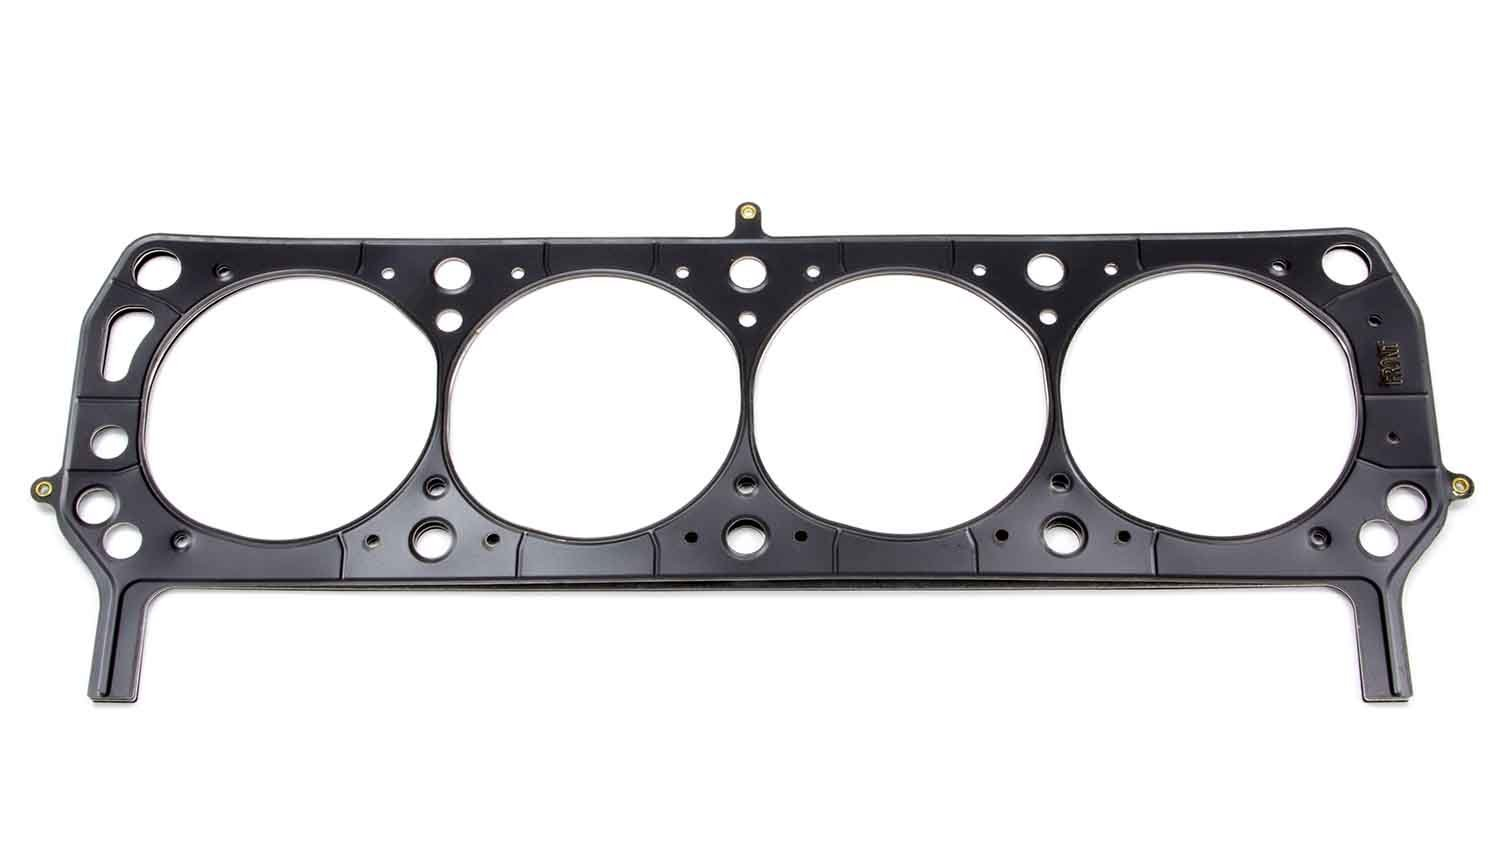 Cometic Gasket C5364-040 MLS .040 Thickness 4.180 Head Gasket for Small Block Ford Yates LH